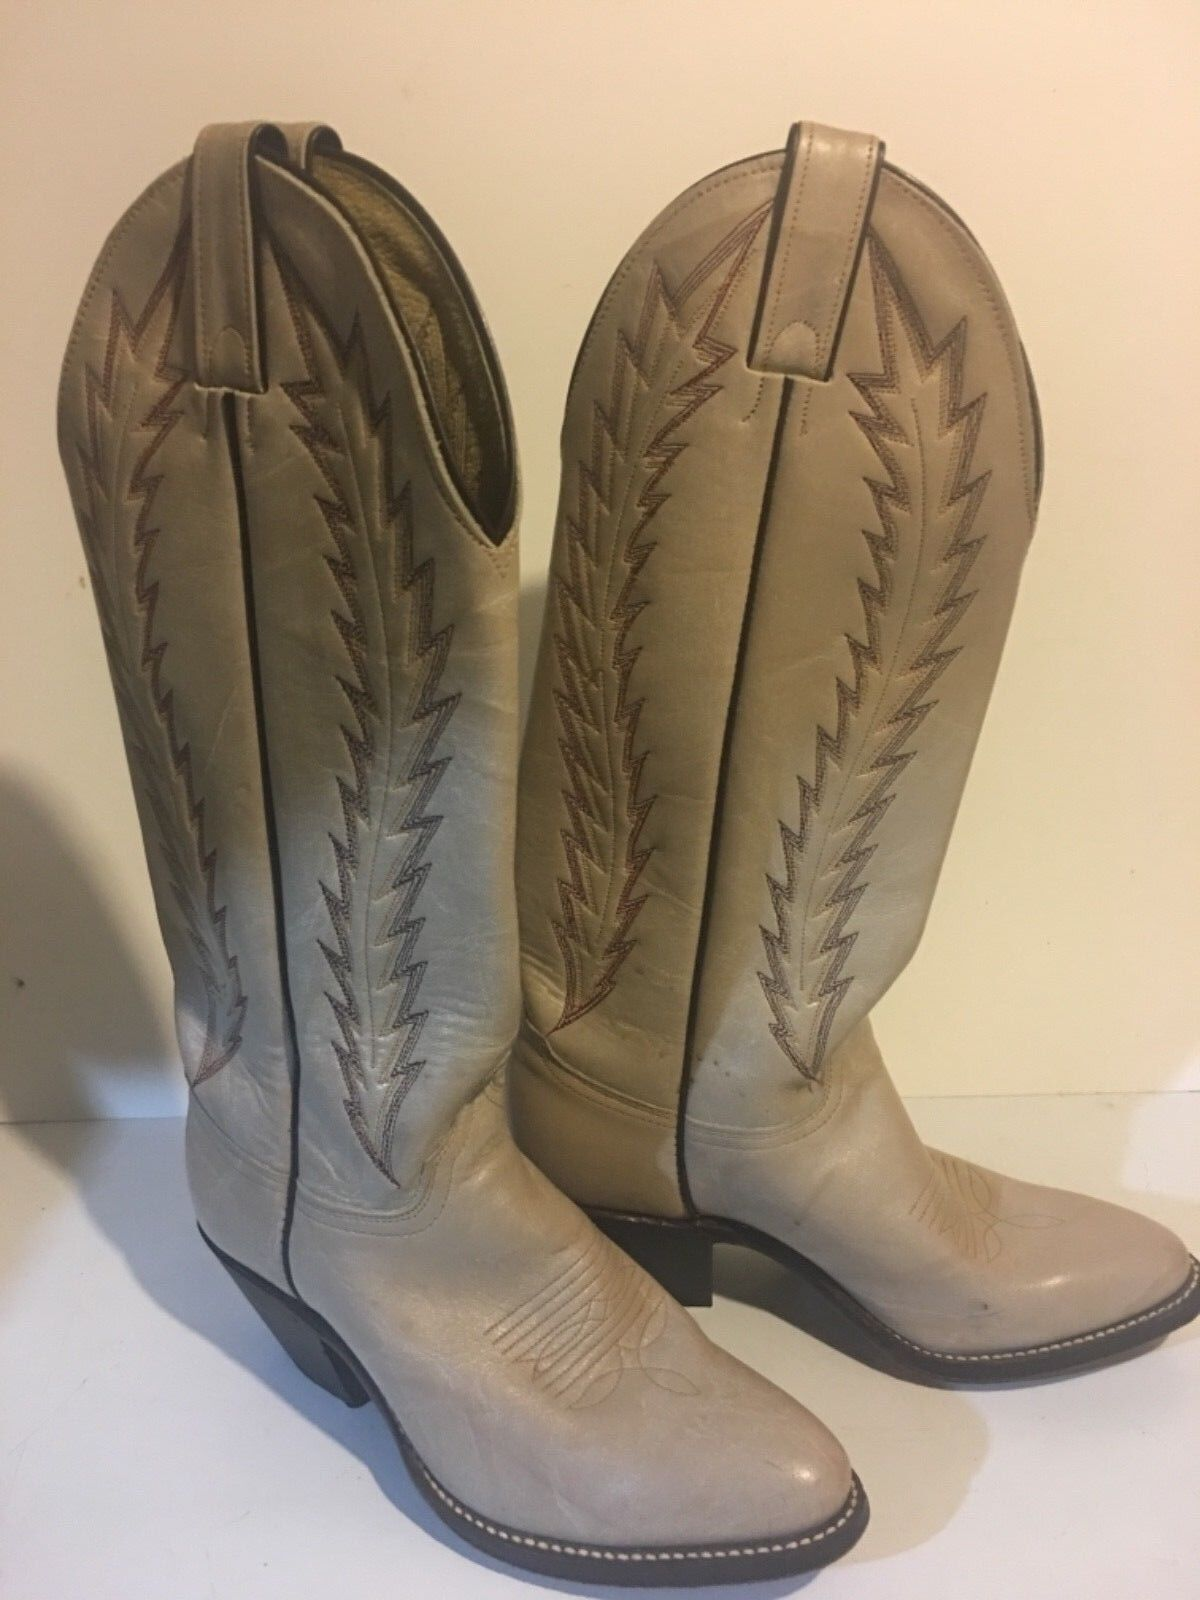 ABILENE USA LEATHER UPPERS COWGIRL western  bottes TAN BEIGE 6.5 STITCHED